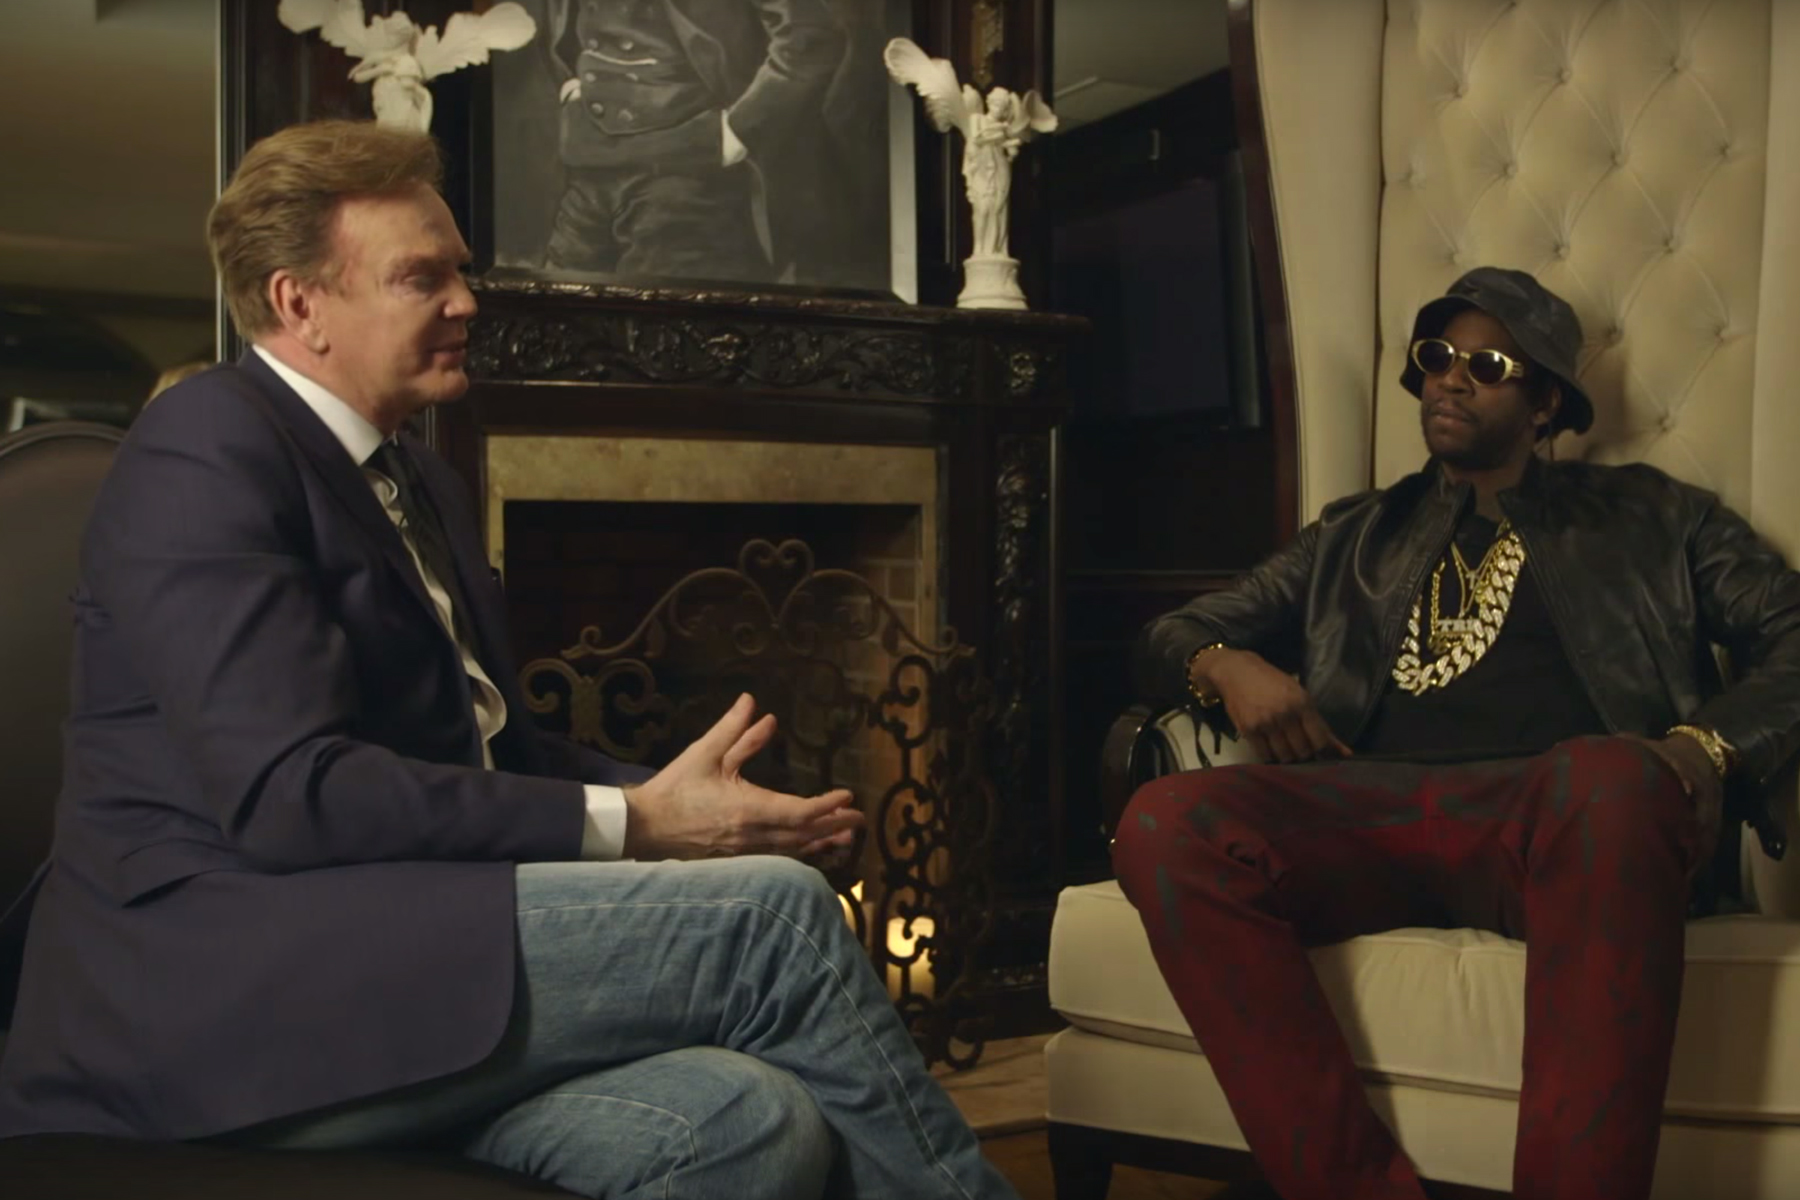 2 Chainz Meets Furniture Idol on 'Most Expensivest Shit'